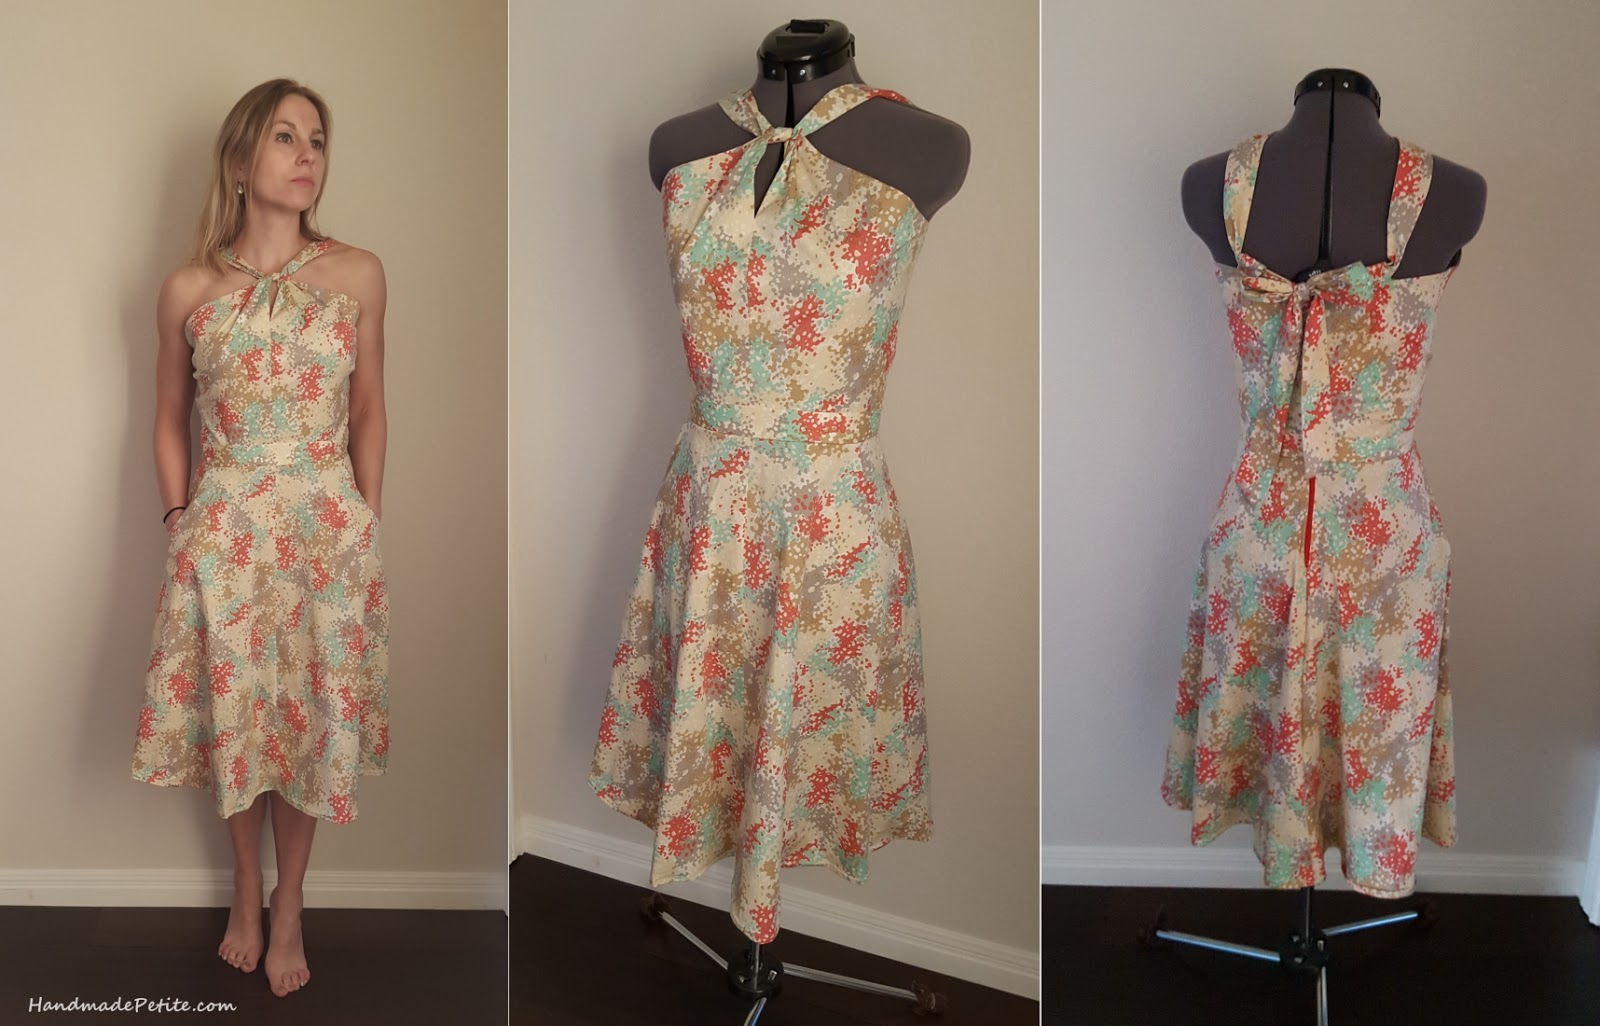 Sewing summer dress from Sewaholic Lonsdale pattern in yellow, red, green, gray color